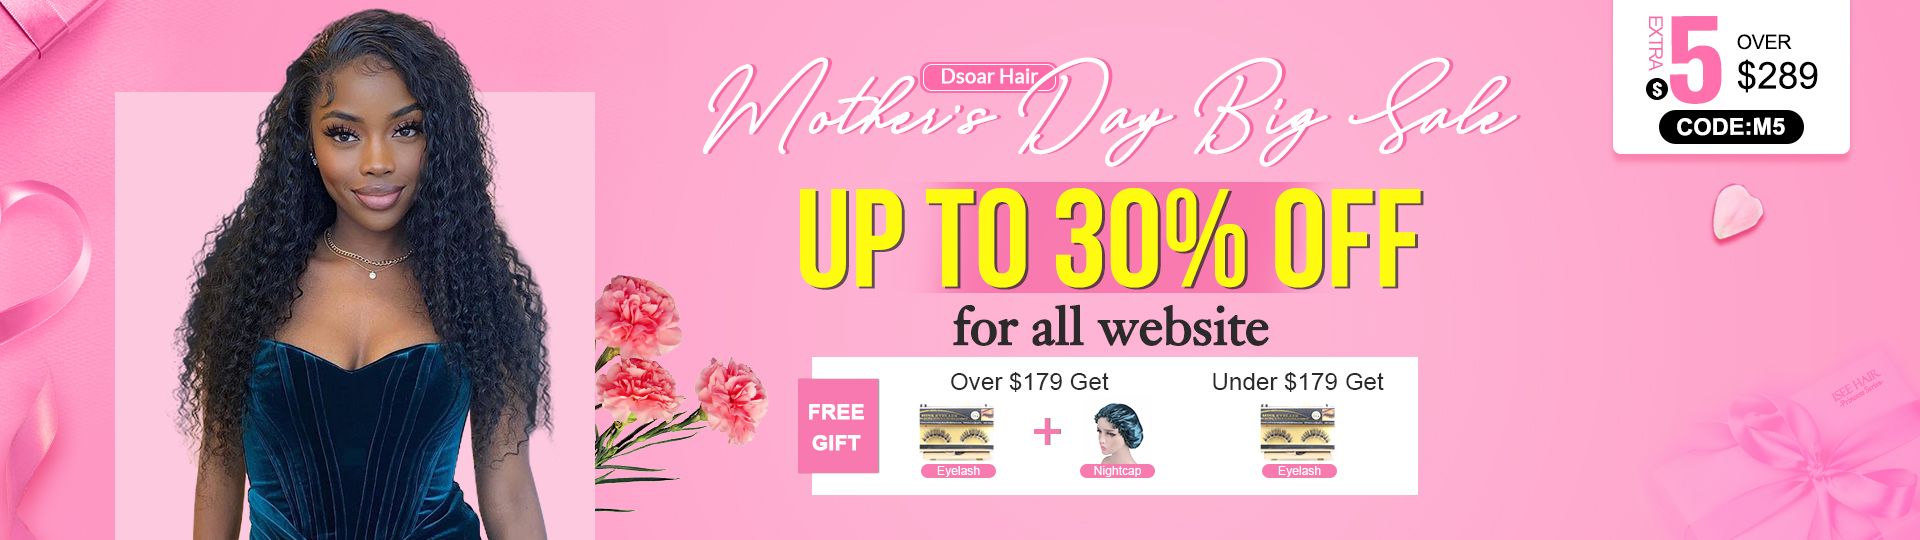 dsoar mother's day sale